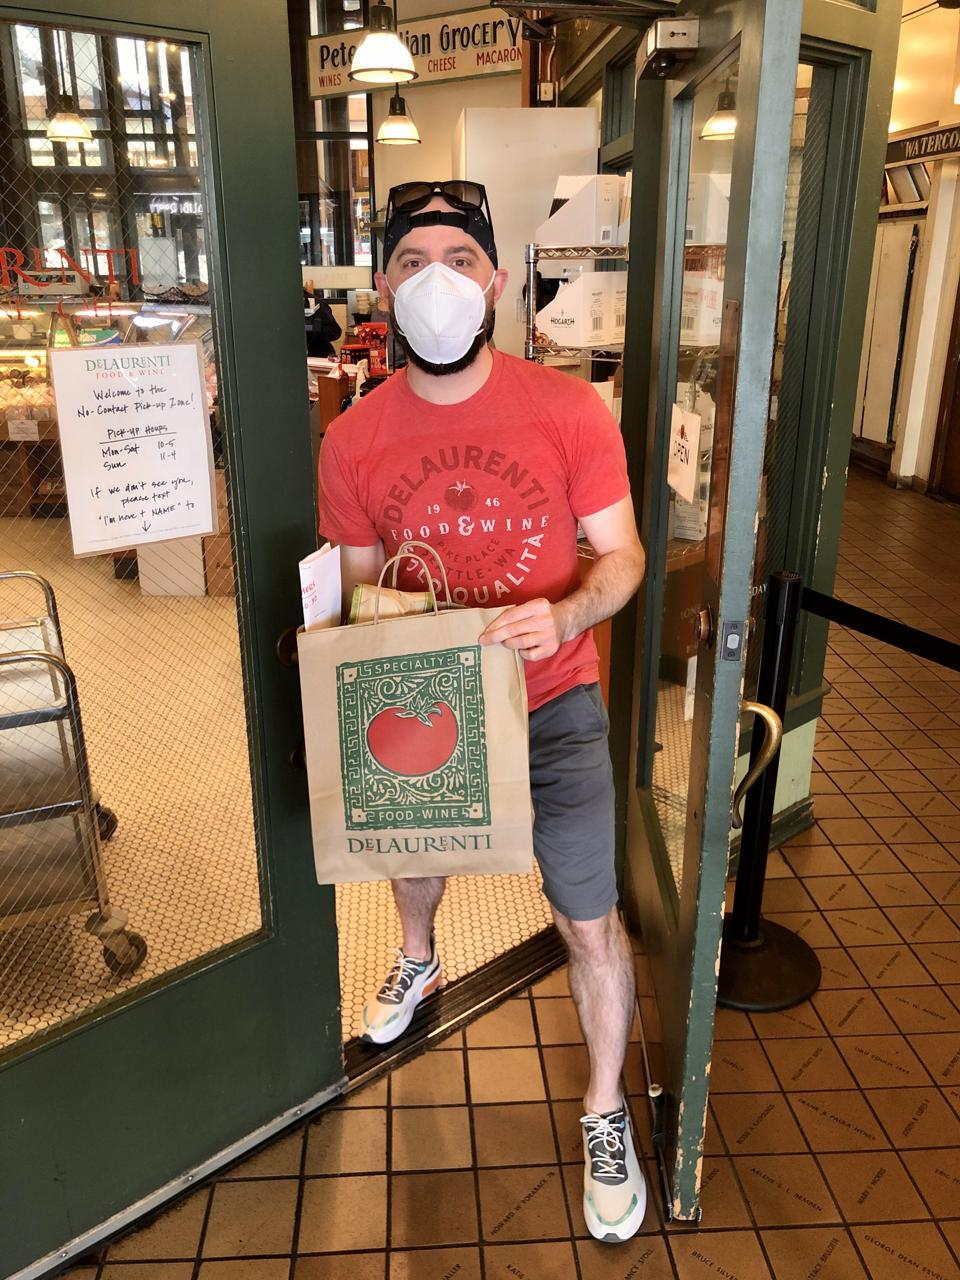 DeLaurenti offers online ordering and pickup at Pike Place Market in Seattle.